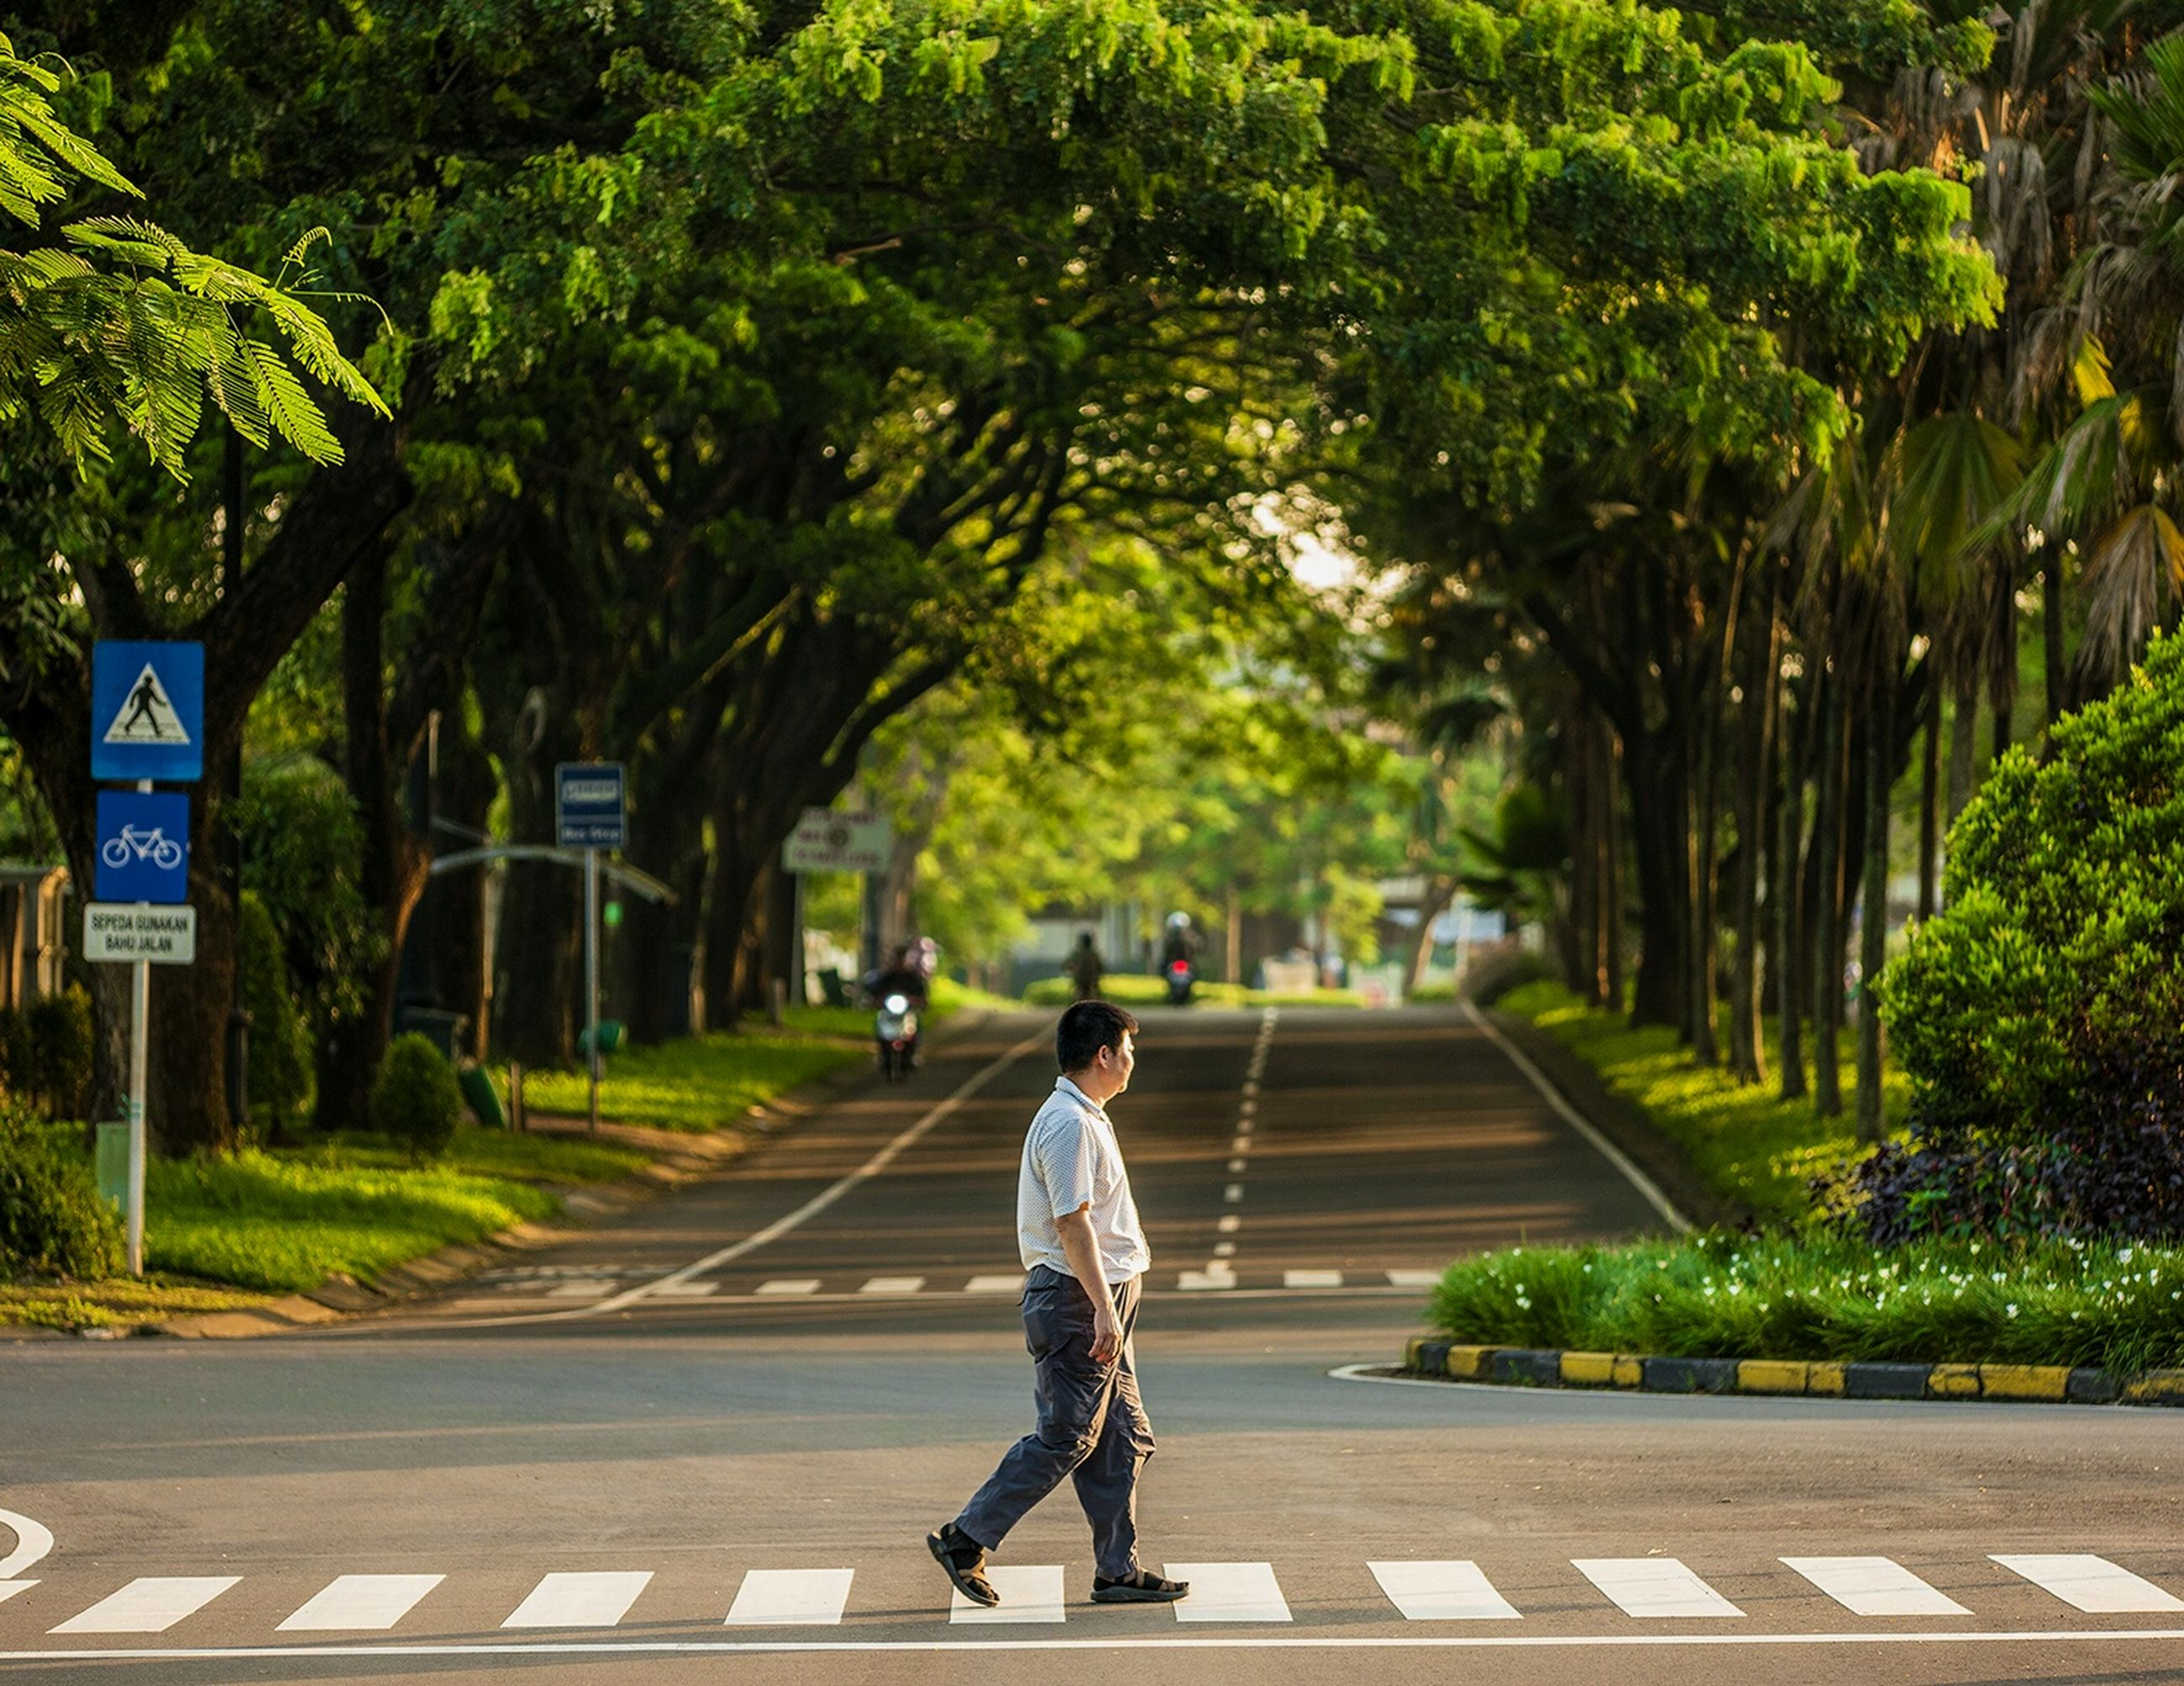 transportation, tree, road, street, full length, lifestyles, land vehicle, rear view, men, bicycle, mode of transport, walking, on the move, leisure activity, riding, road marking, the way forward, person